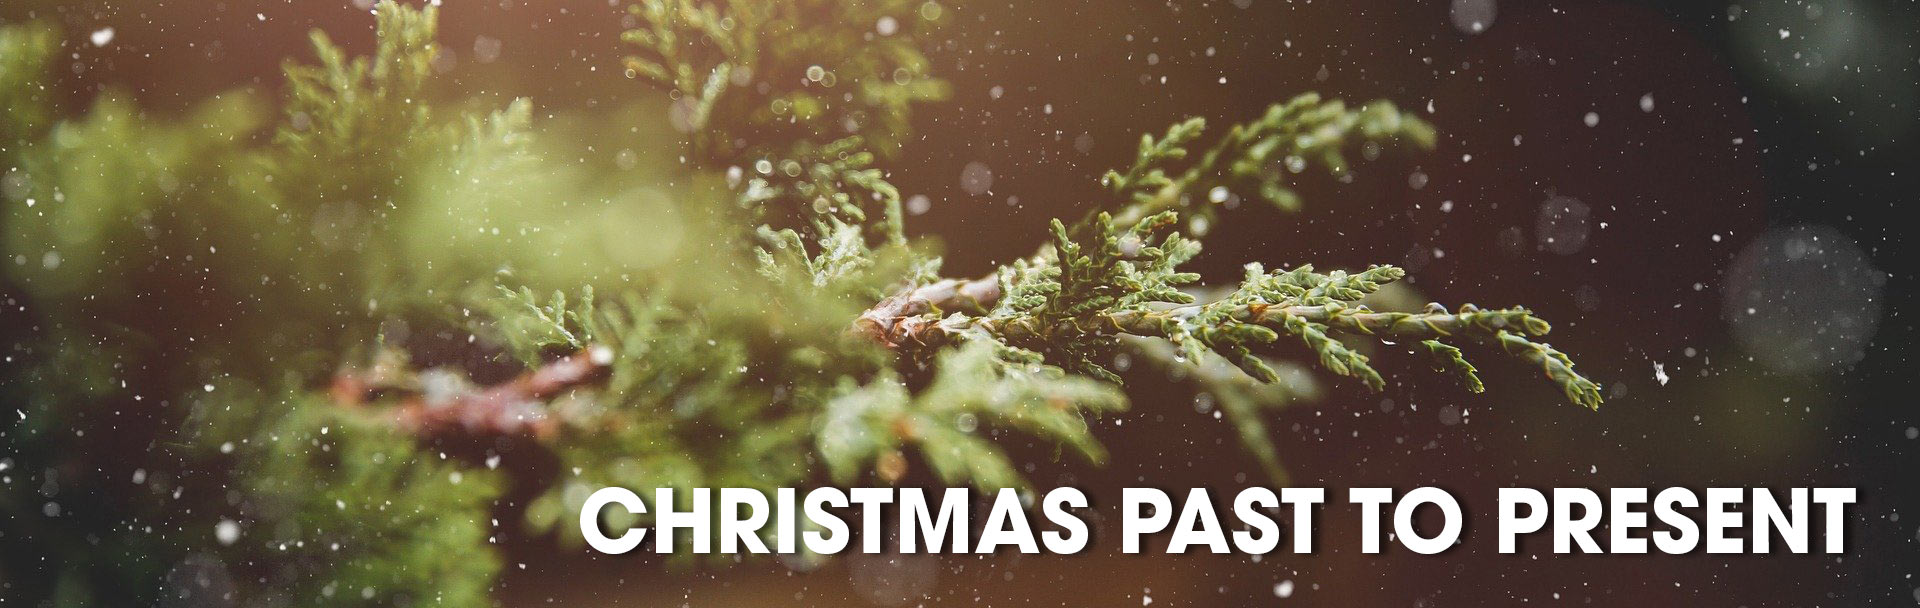 Ewan Irvine Presents Christmas Past to Present